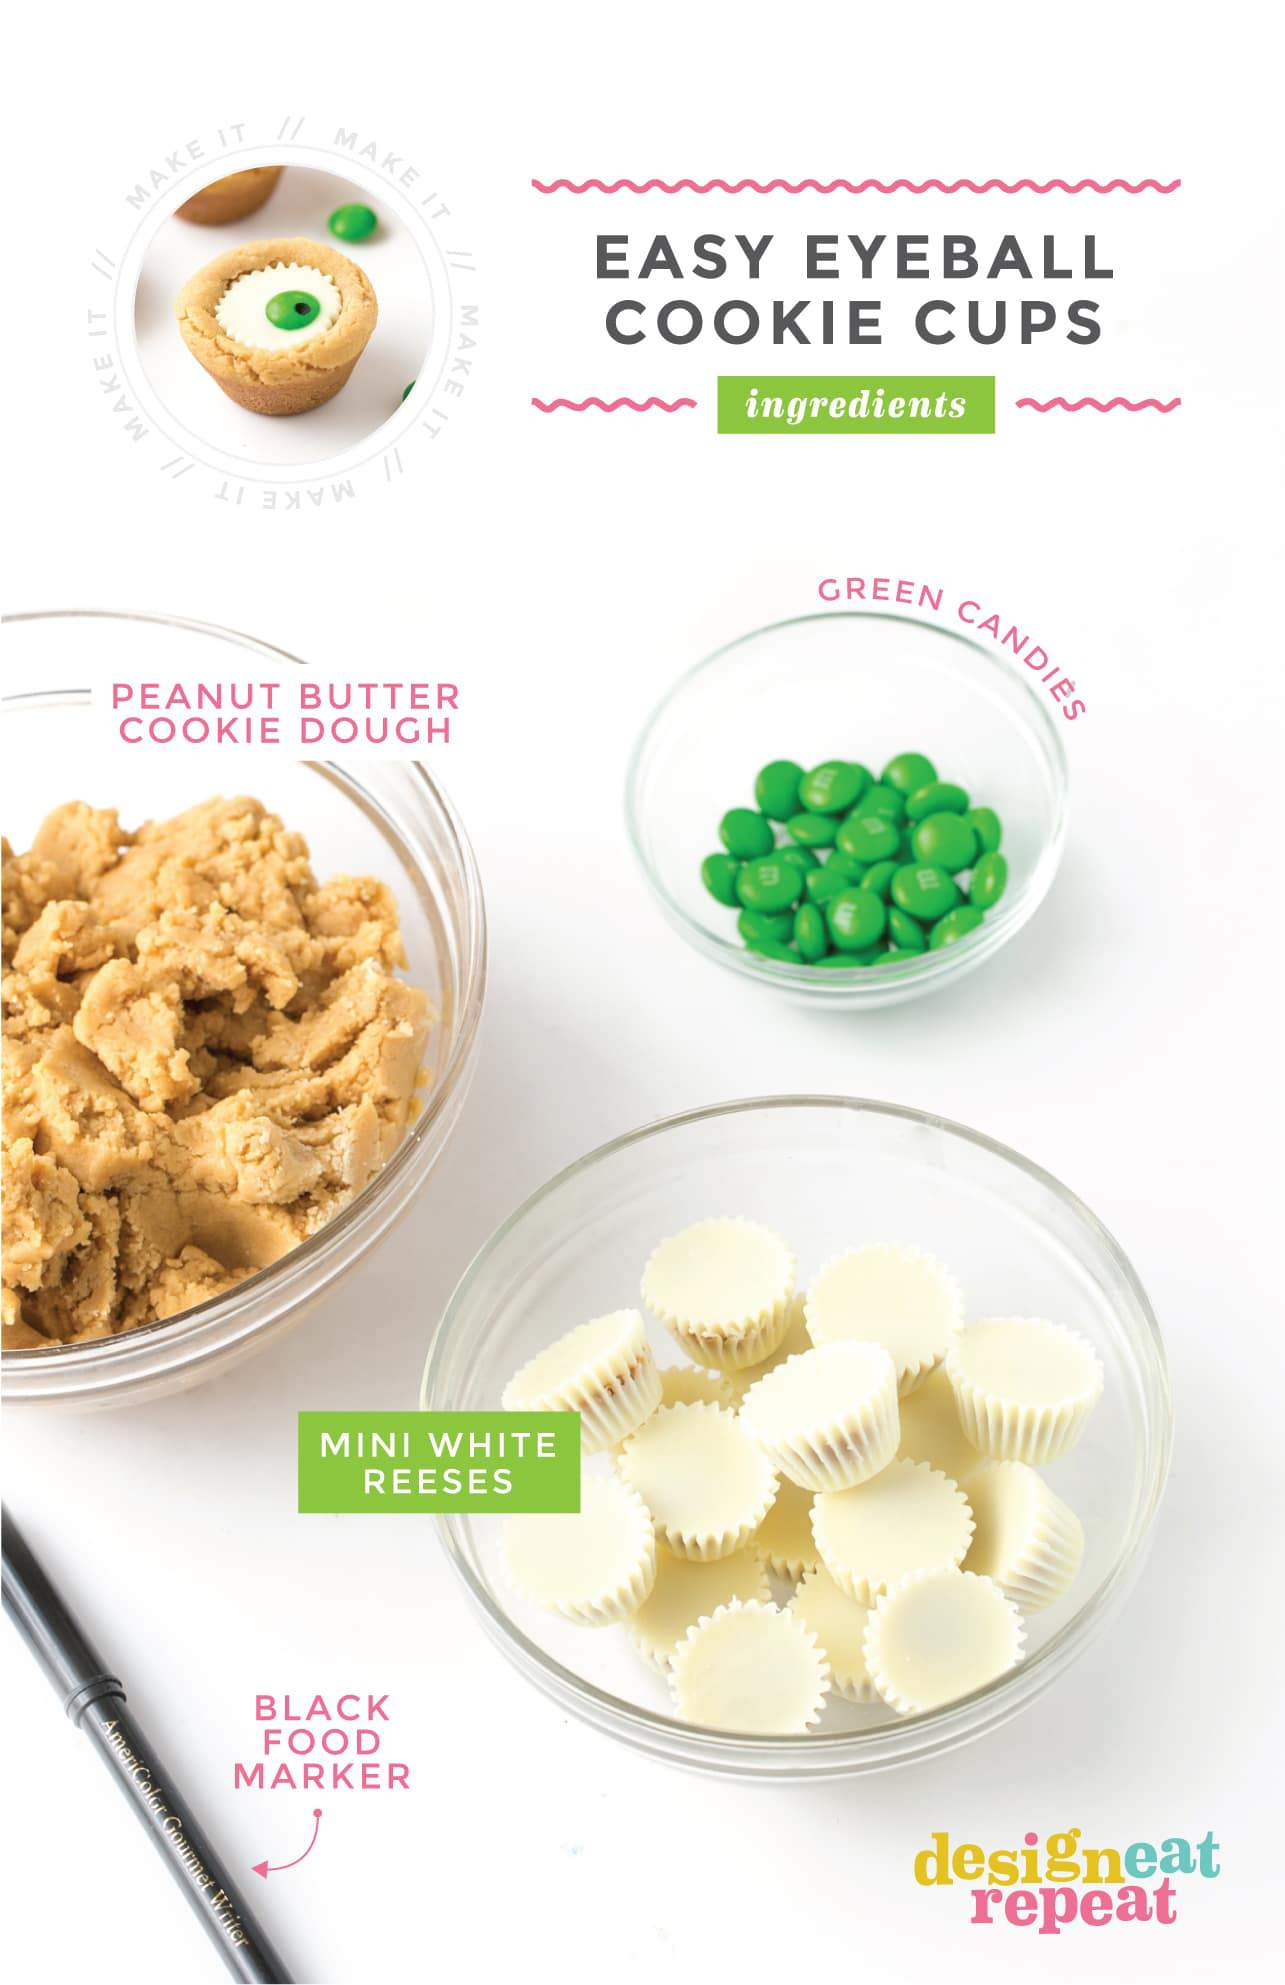 Ingredients for Easy Eyeball Cookies - Bowl of White Chocolate Reeses, Peanut Butter Cookie Dough, Bowl of Green M&M's, and Black Food Pen